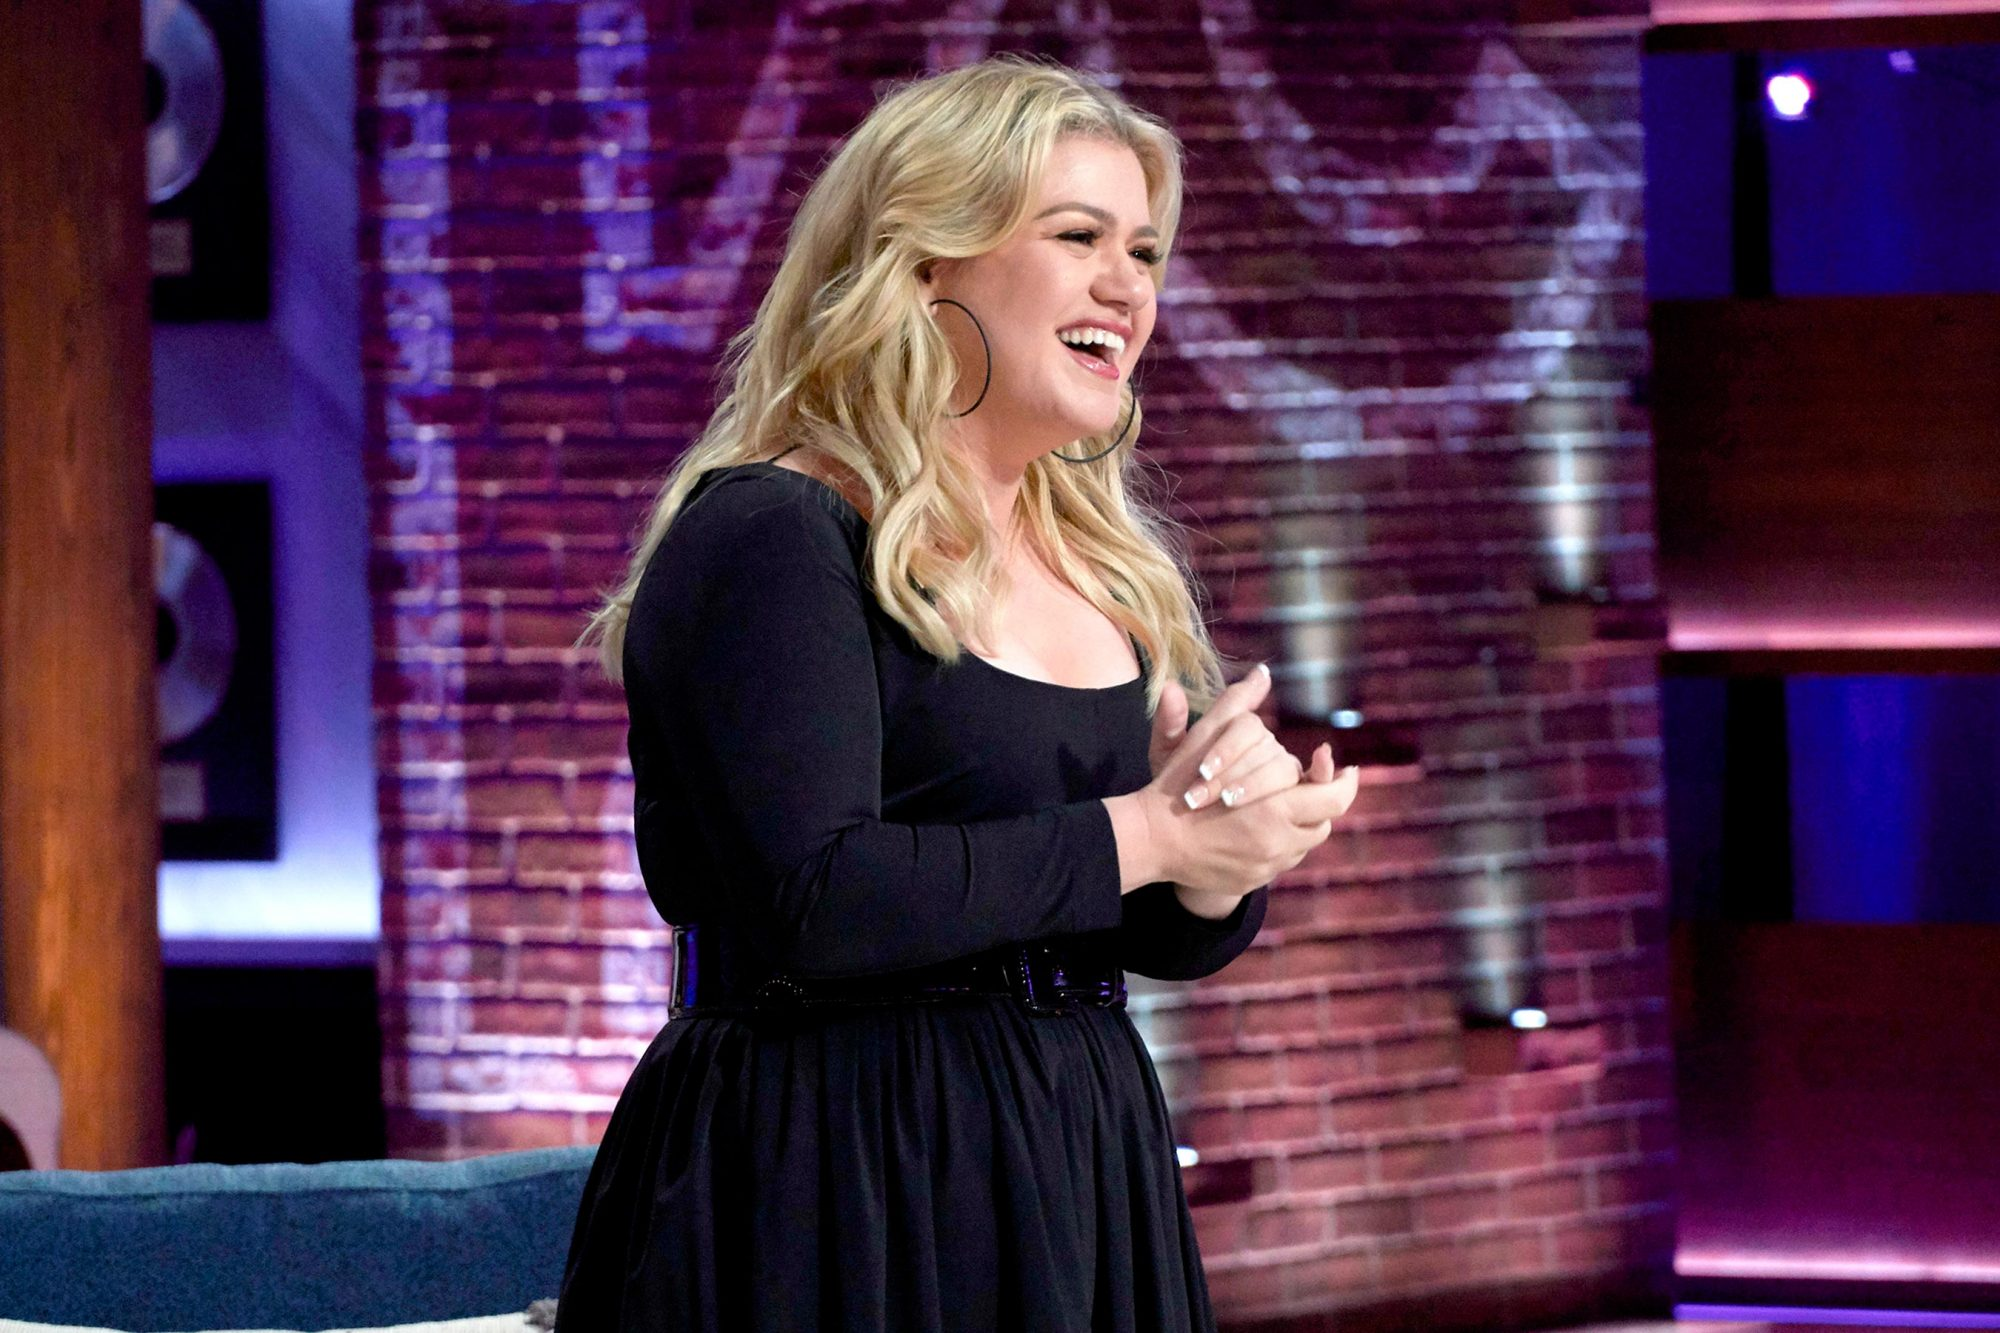 THE KELLY CLARKSON SHOW -- Episode 3009 -- Pictured: Kelly Clarkson -- (Photo by: Adam Torgerson/NBCUniversal)